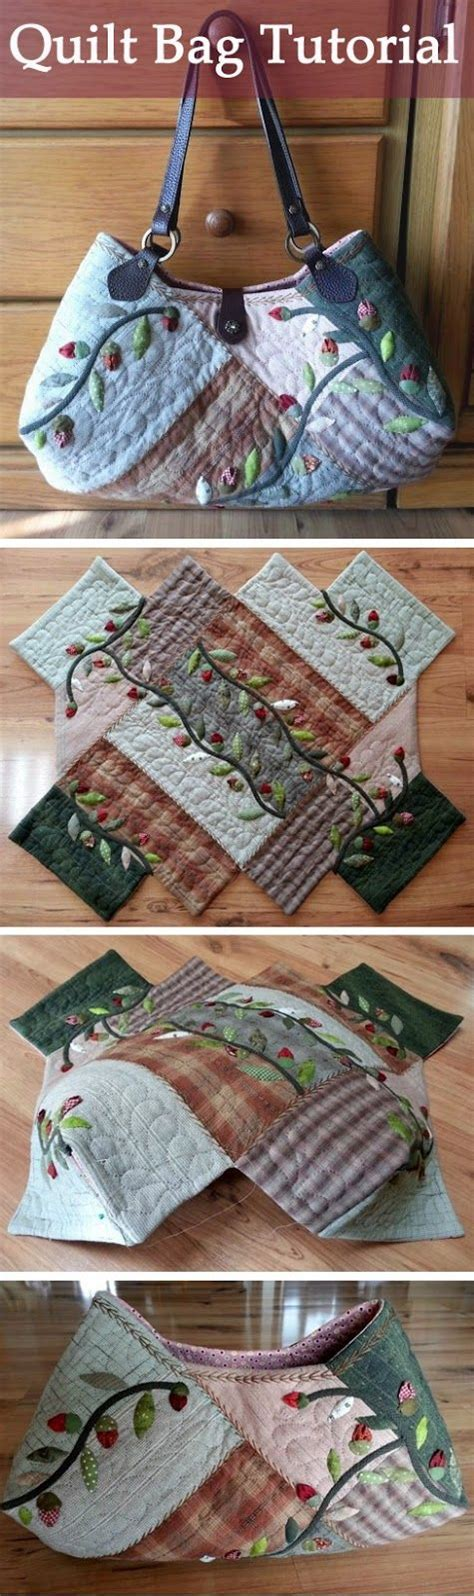 pattern quilt bag bags flower and scrappy quilts on pinterest